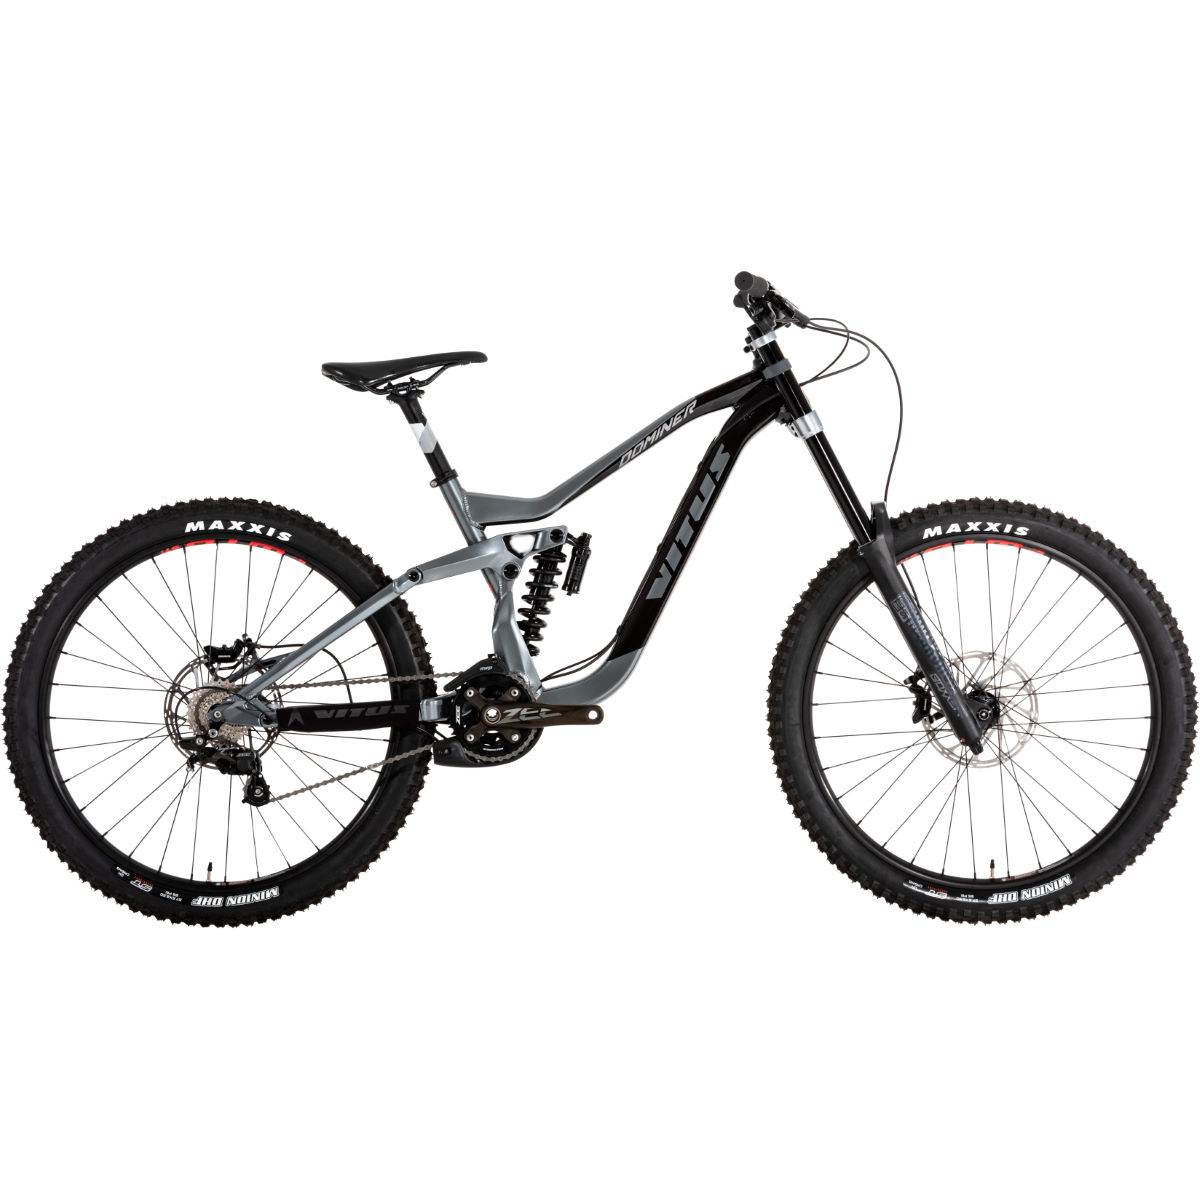 Vitus Dominer Downhill GX- 2019 Full